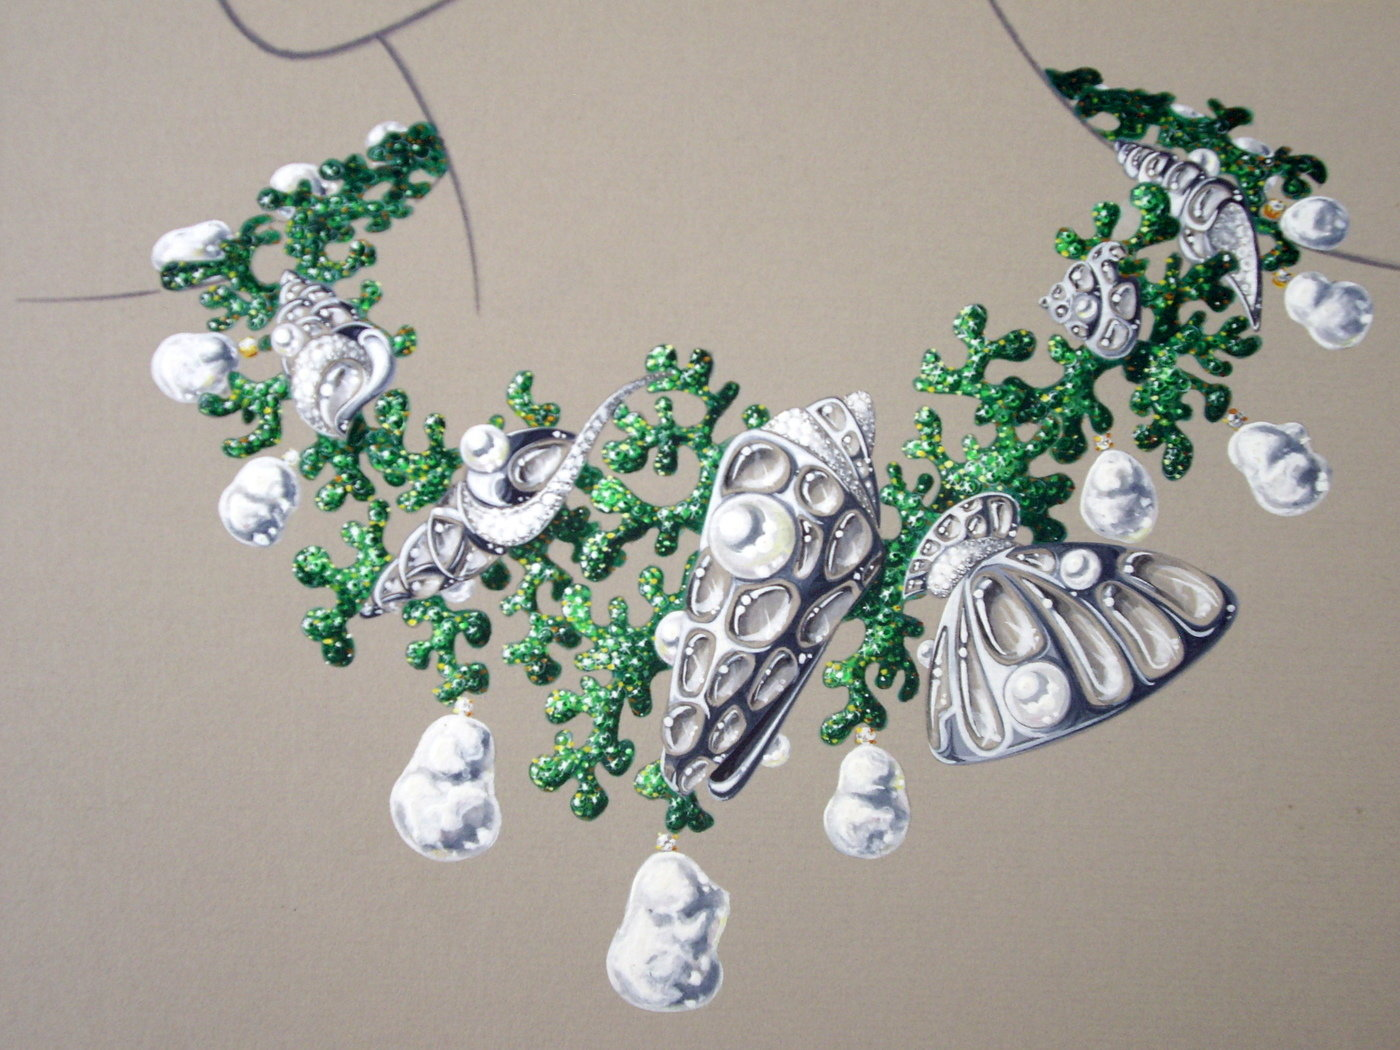 AWARDS International Pearl Jewellery Design Contests by Thierry